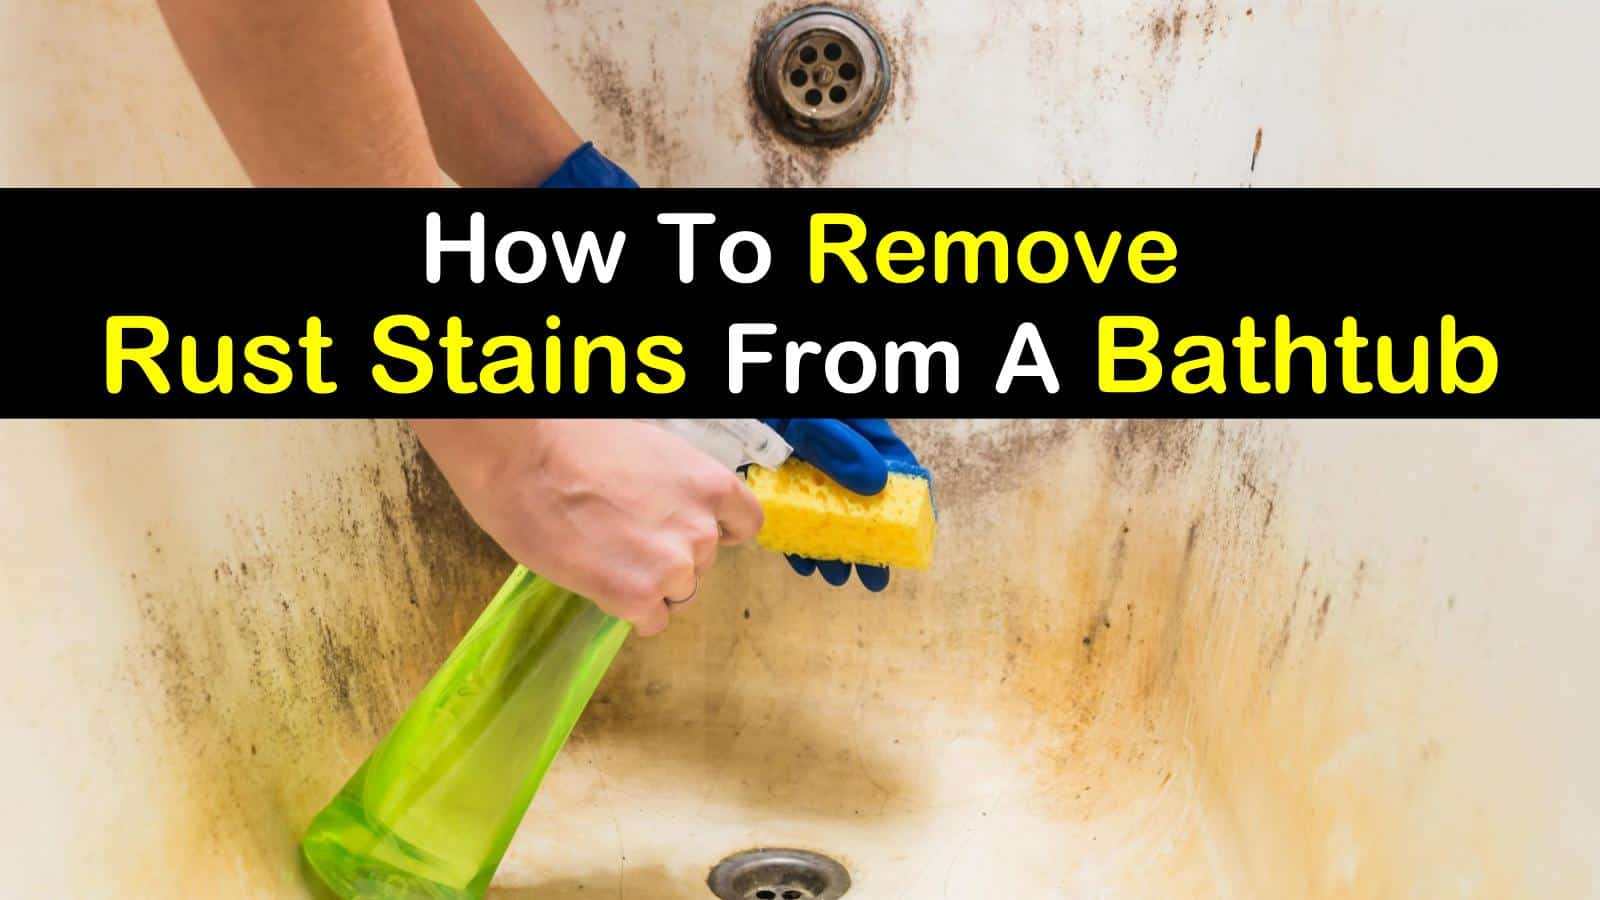 4 Fast Easy Ways To Remove Rust Stains From A Bathtub